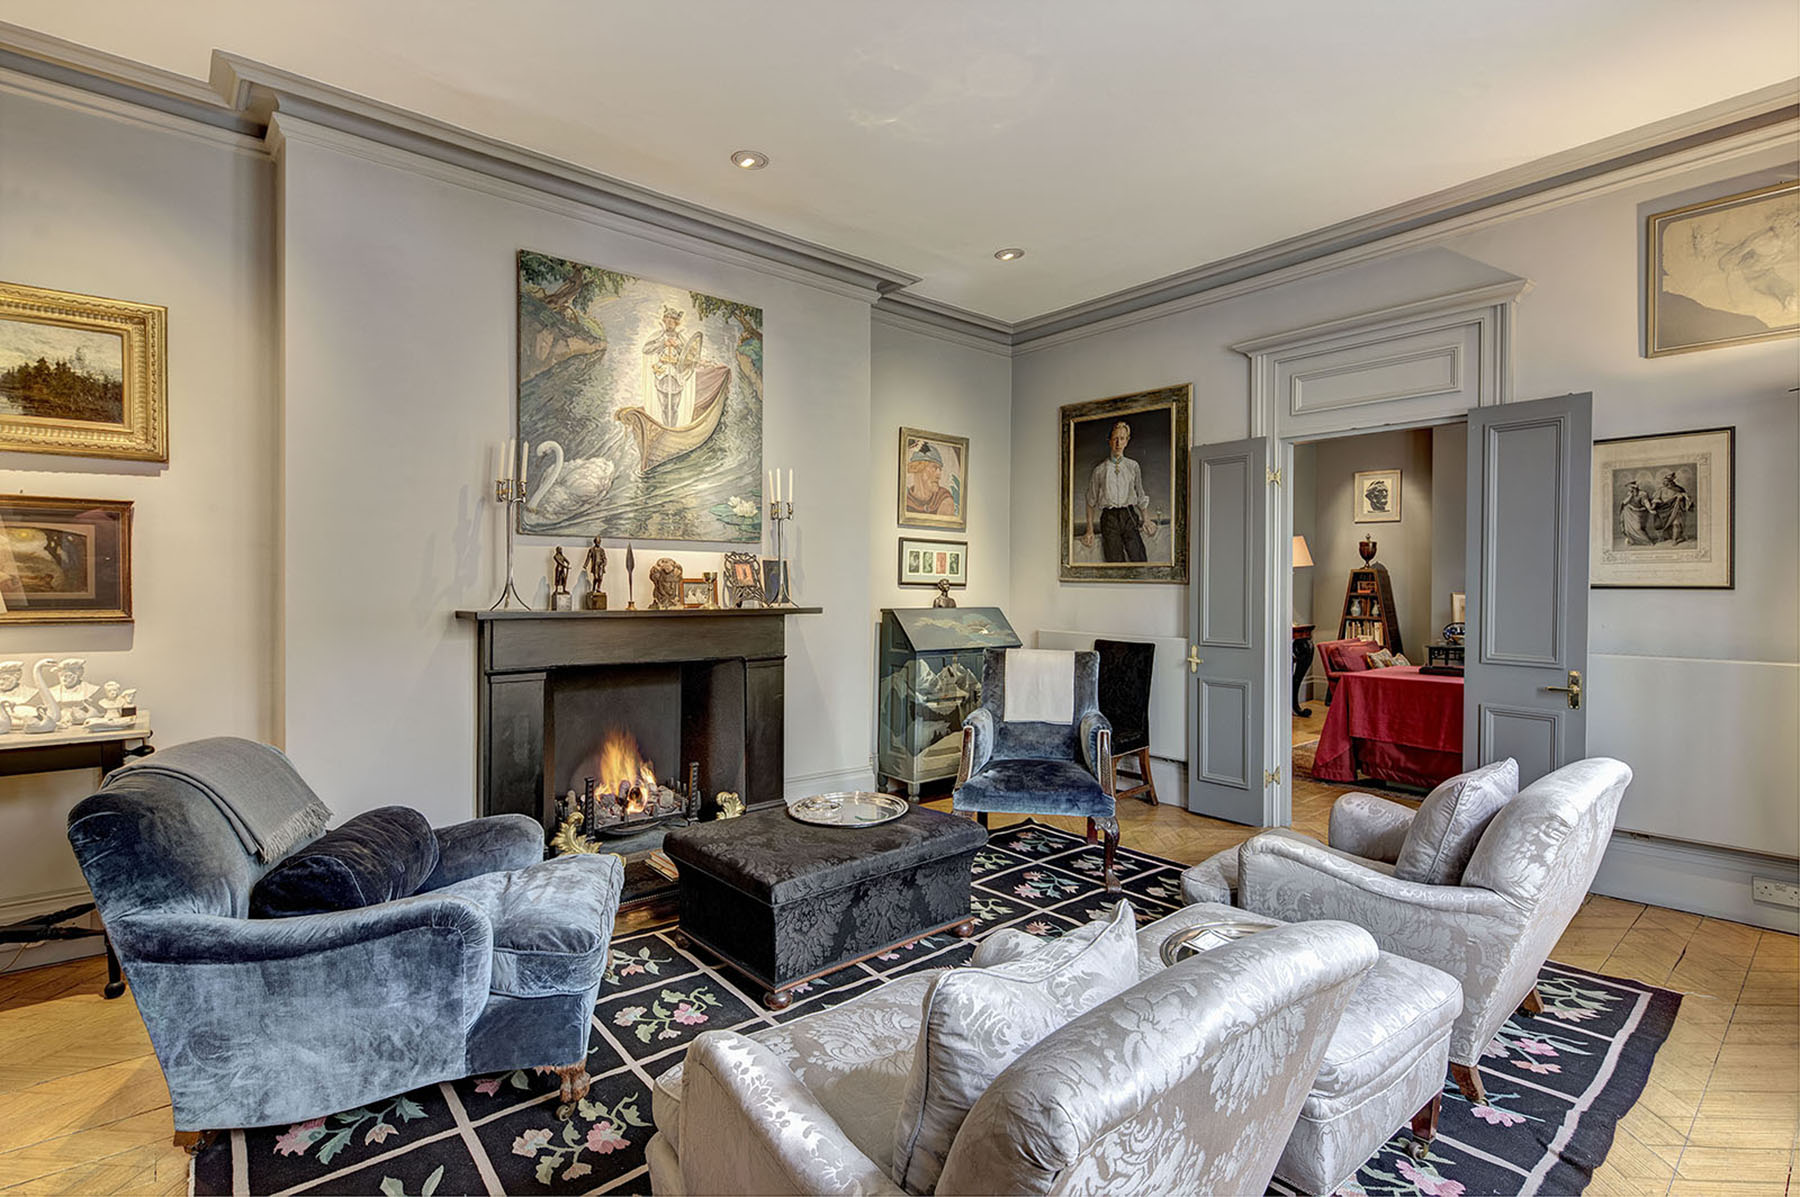 Apartment for Sale at Morpeth Terrace London, England, United Kingdom